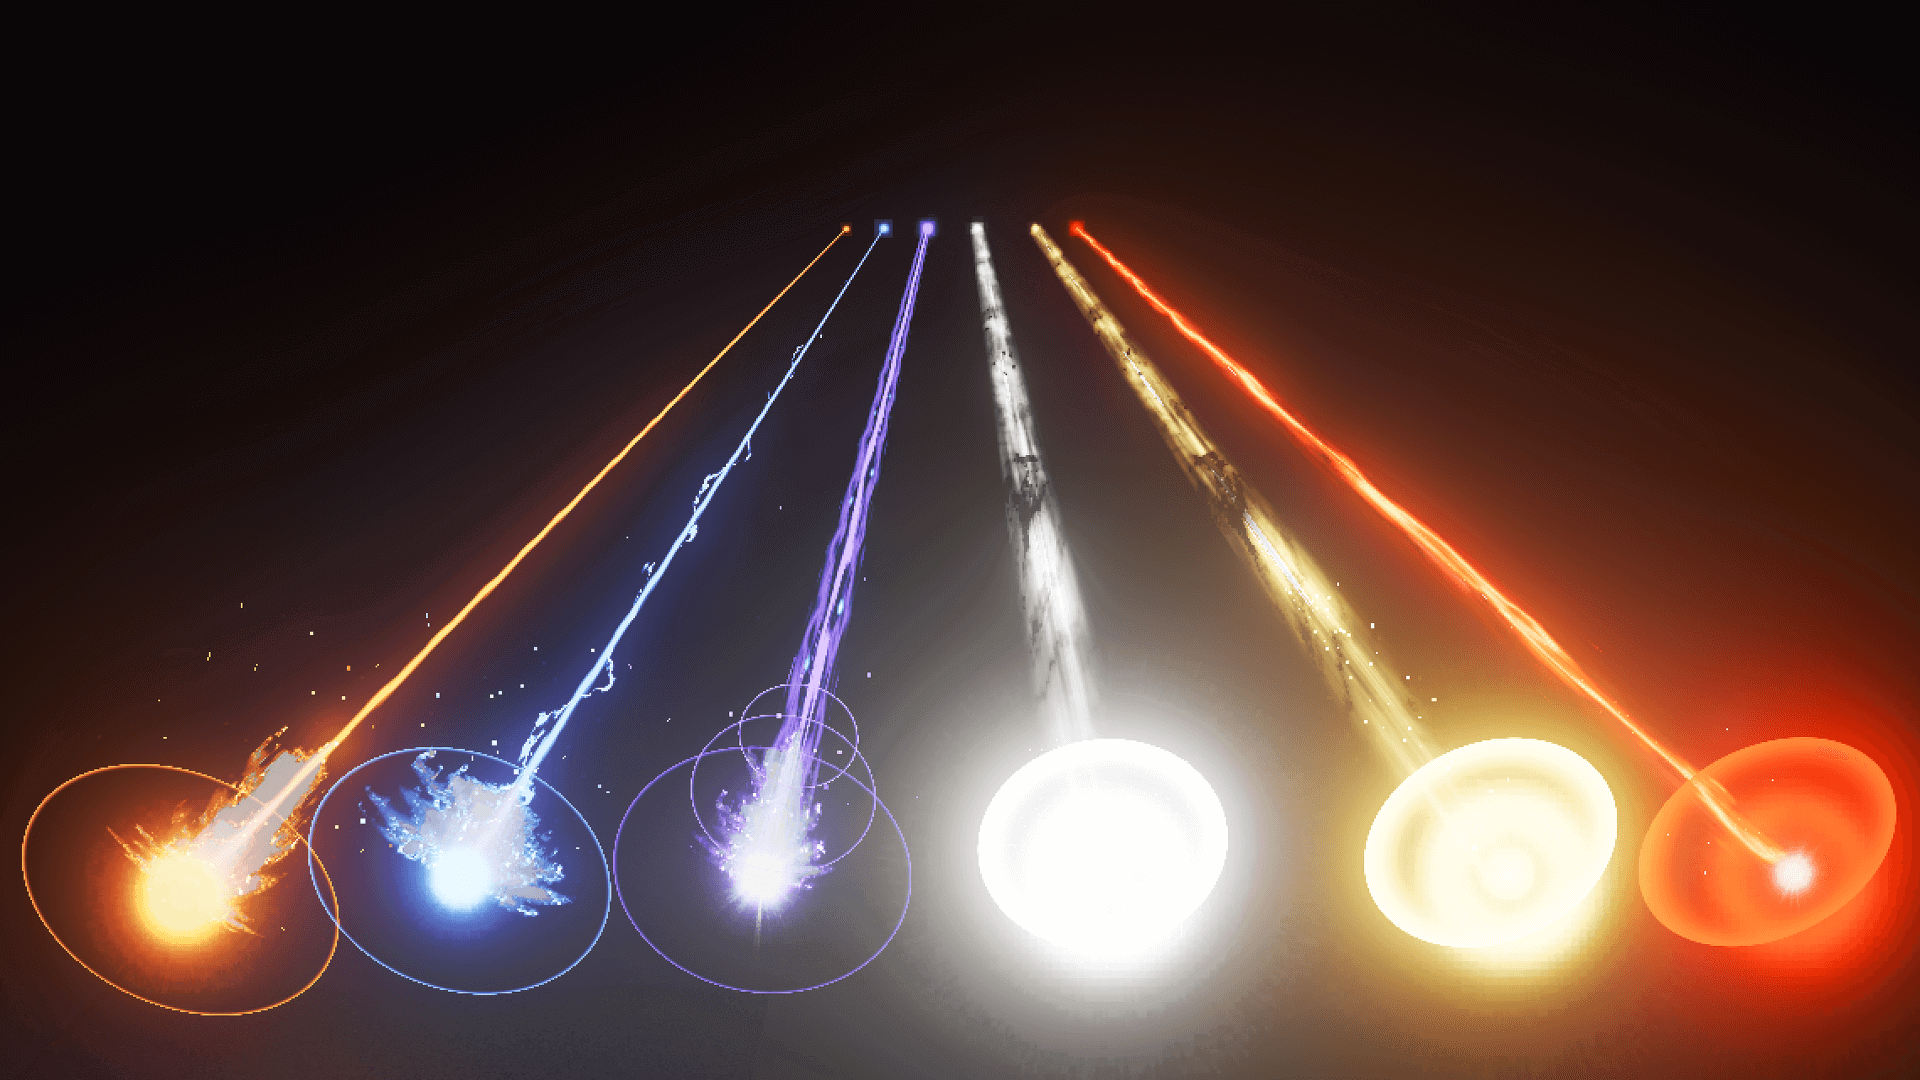 Beam And Laser FX 01 by Kakky in FX - UE4 Marketplace | anatomy in